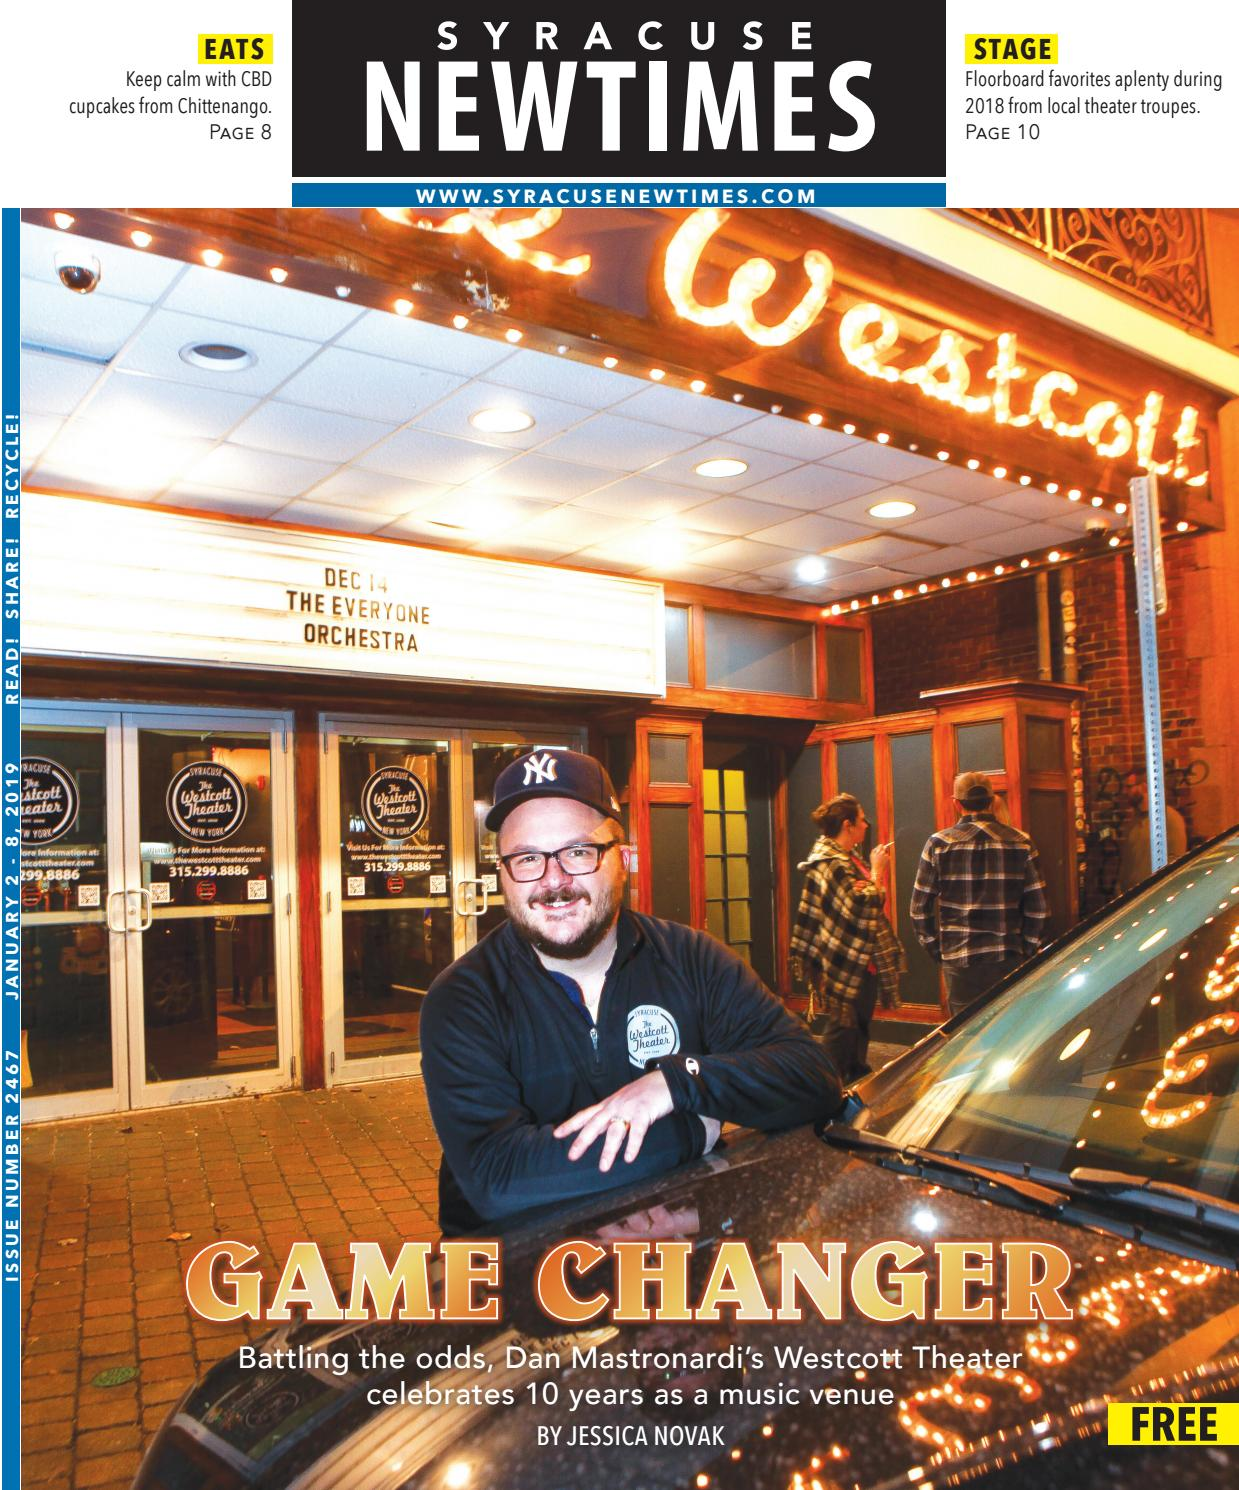 Syracuse New Times 1 2 19 By Syracuse New Times Issuu